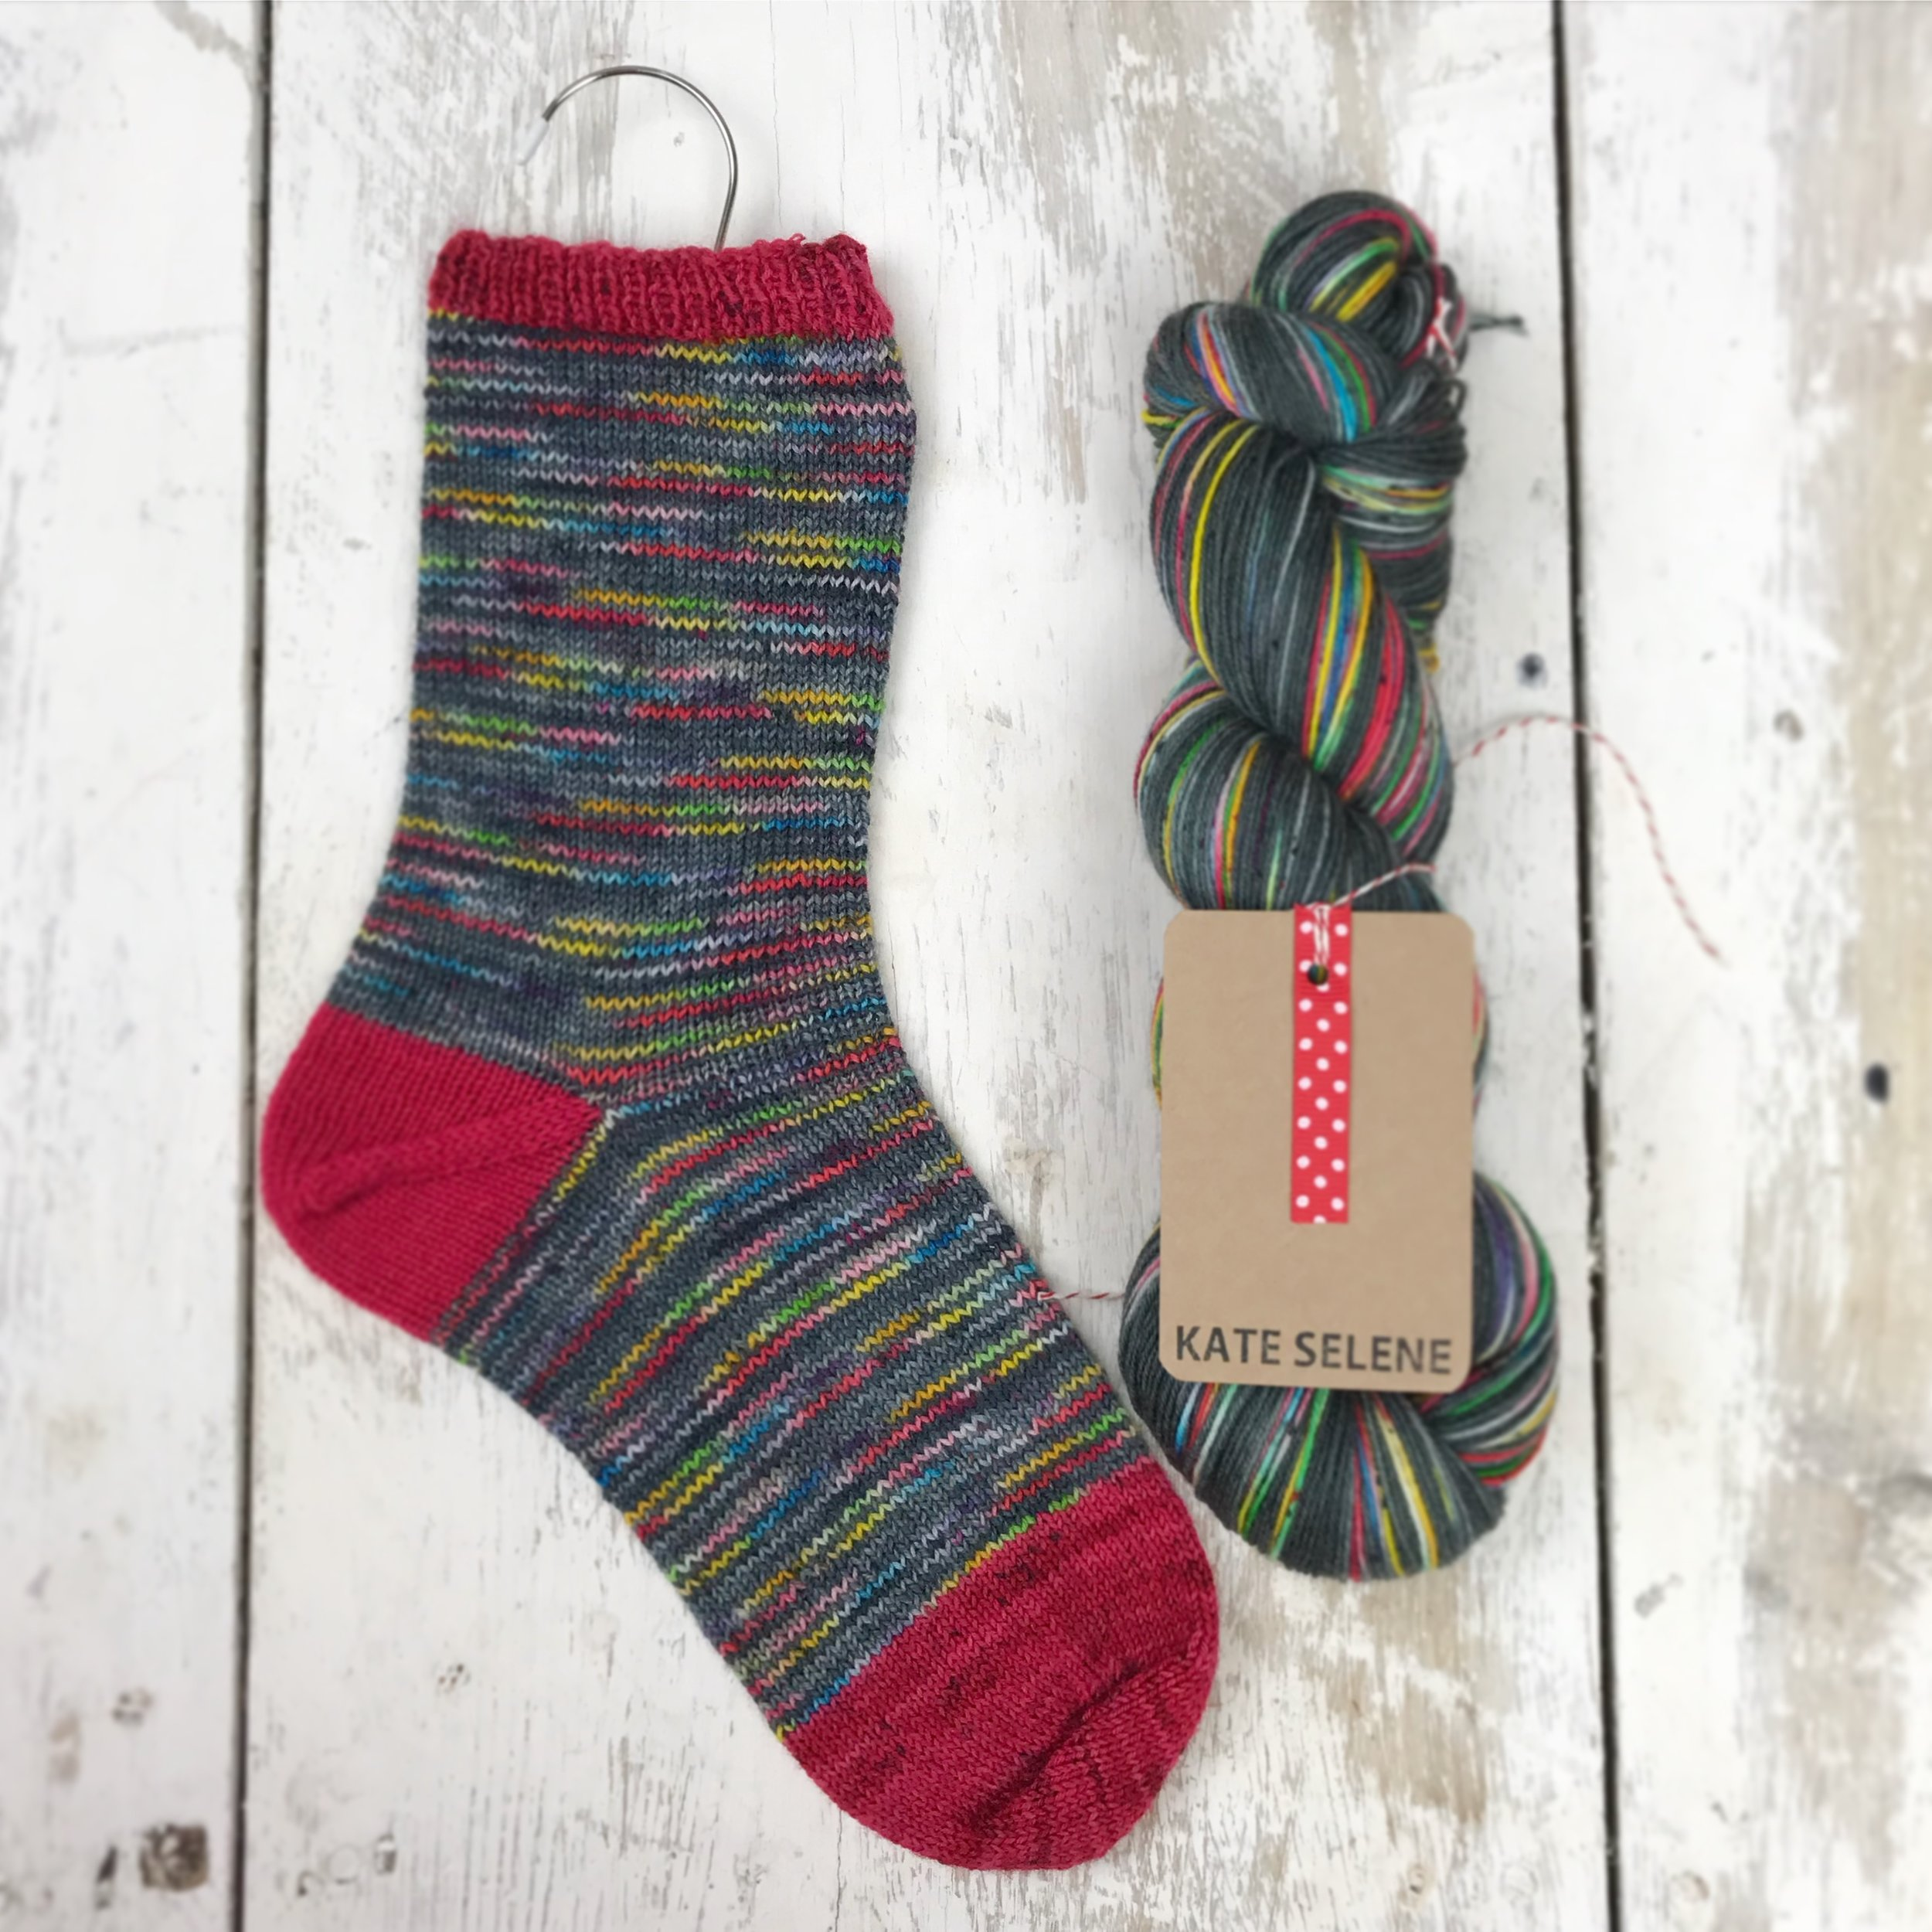 Keeping it simple. - if there is one thing I can admit to, and that is that I pretty much only like knitting the knit stitch, on circulars! which means over time I have learned that an easy way of making simple knitting look striking is to choose a yarn that is designed for socks. I create lots of yarns that pools in section to create a stripe like effect or you can look for a self striping yarn from one of the amazing indie dyers out there, there are so many to choose from! grab a bit of contrast colour for heels, cuffs and toes and you are away!